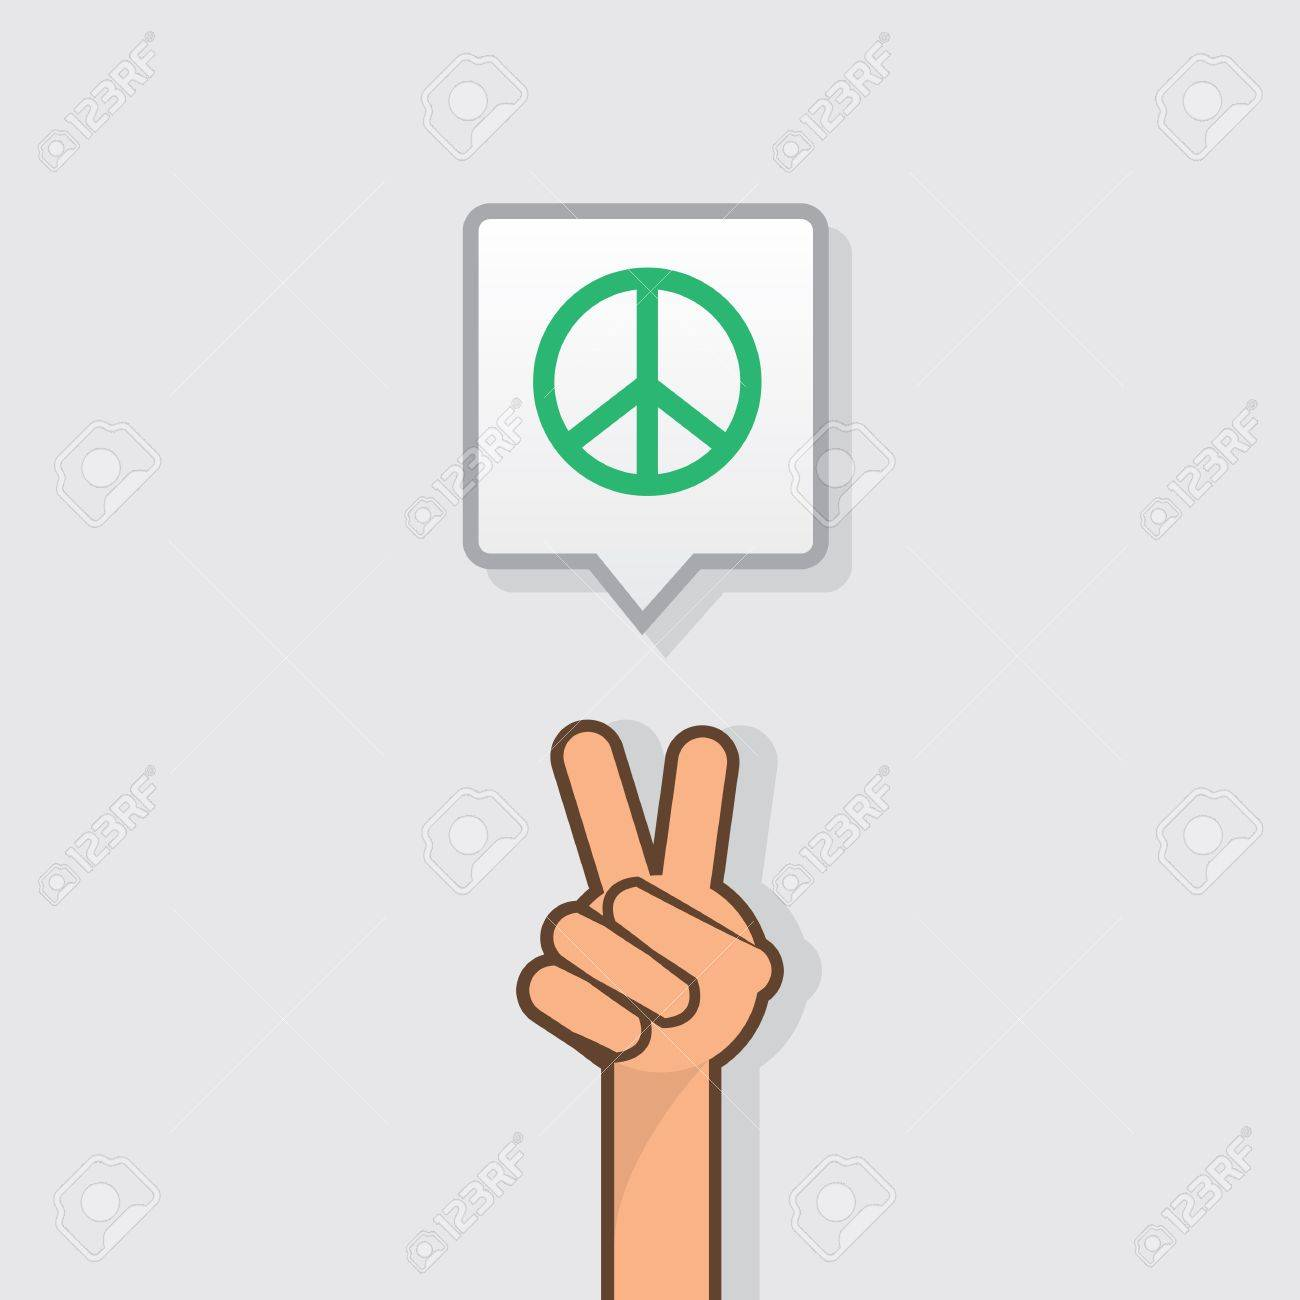 Hand making peace sign with peace symbol Stock Vector - 19277266